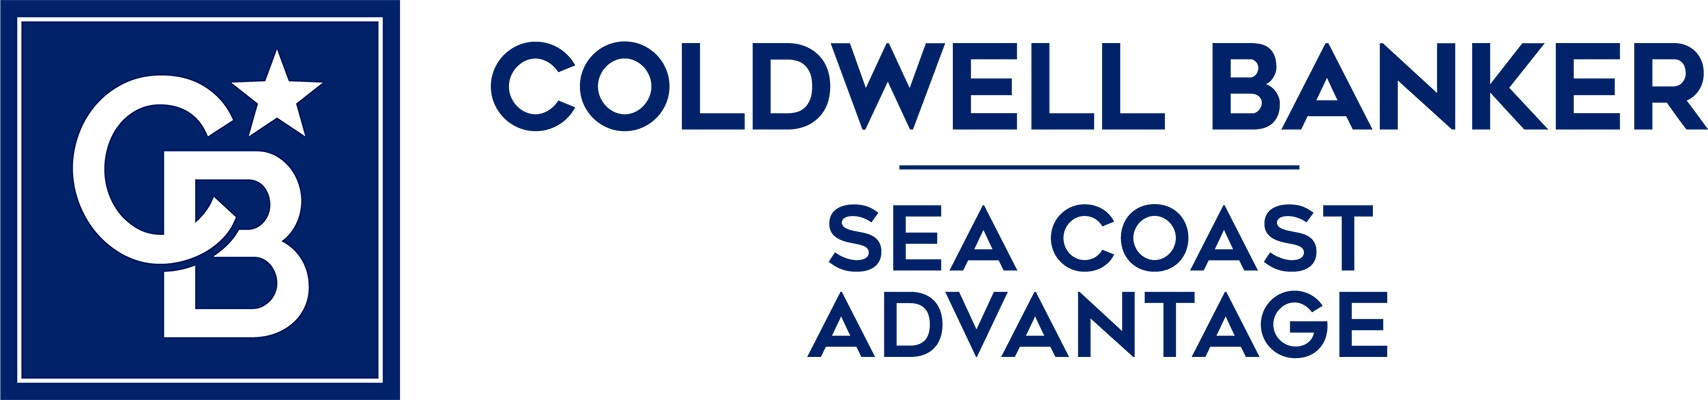 Patrick Woerner - Coldwell Banker Sea Coast Advantage Realty